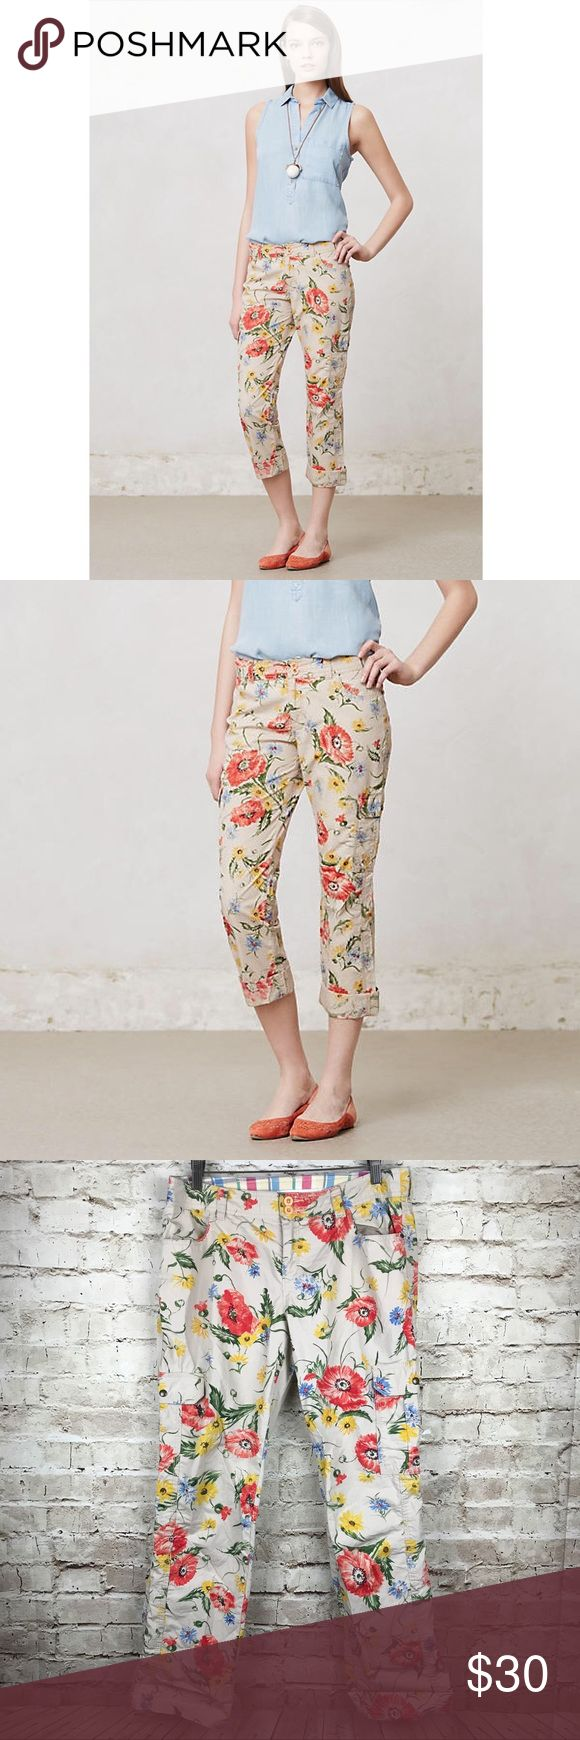 """Hei Hei Floral Sundrop Wonderer Cargo Pants With an eye on the weekend, Hei Hei's casual pieces are infused with sophisticated details and eclectic extras. Case in point: These so-sunny cargo crops. Very good used condition, no flaws or signs of wear. Front, back pockets 100% Cotton Machine wash Inseam: 28"""". Waist: 16"""". Total length - 36"""". Anthropologie Pants"""